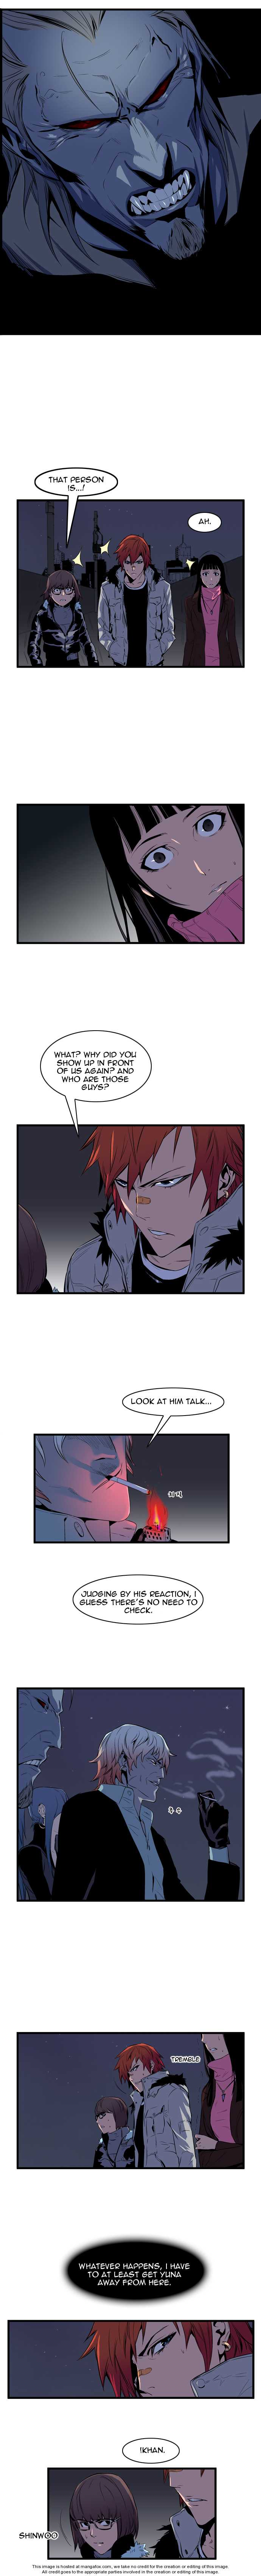 Noblesse 66 Page 2